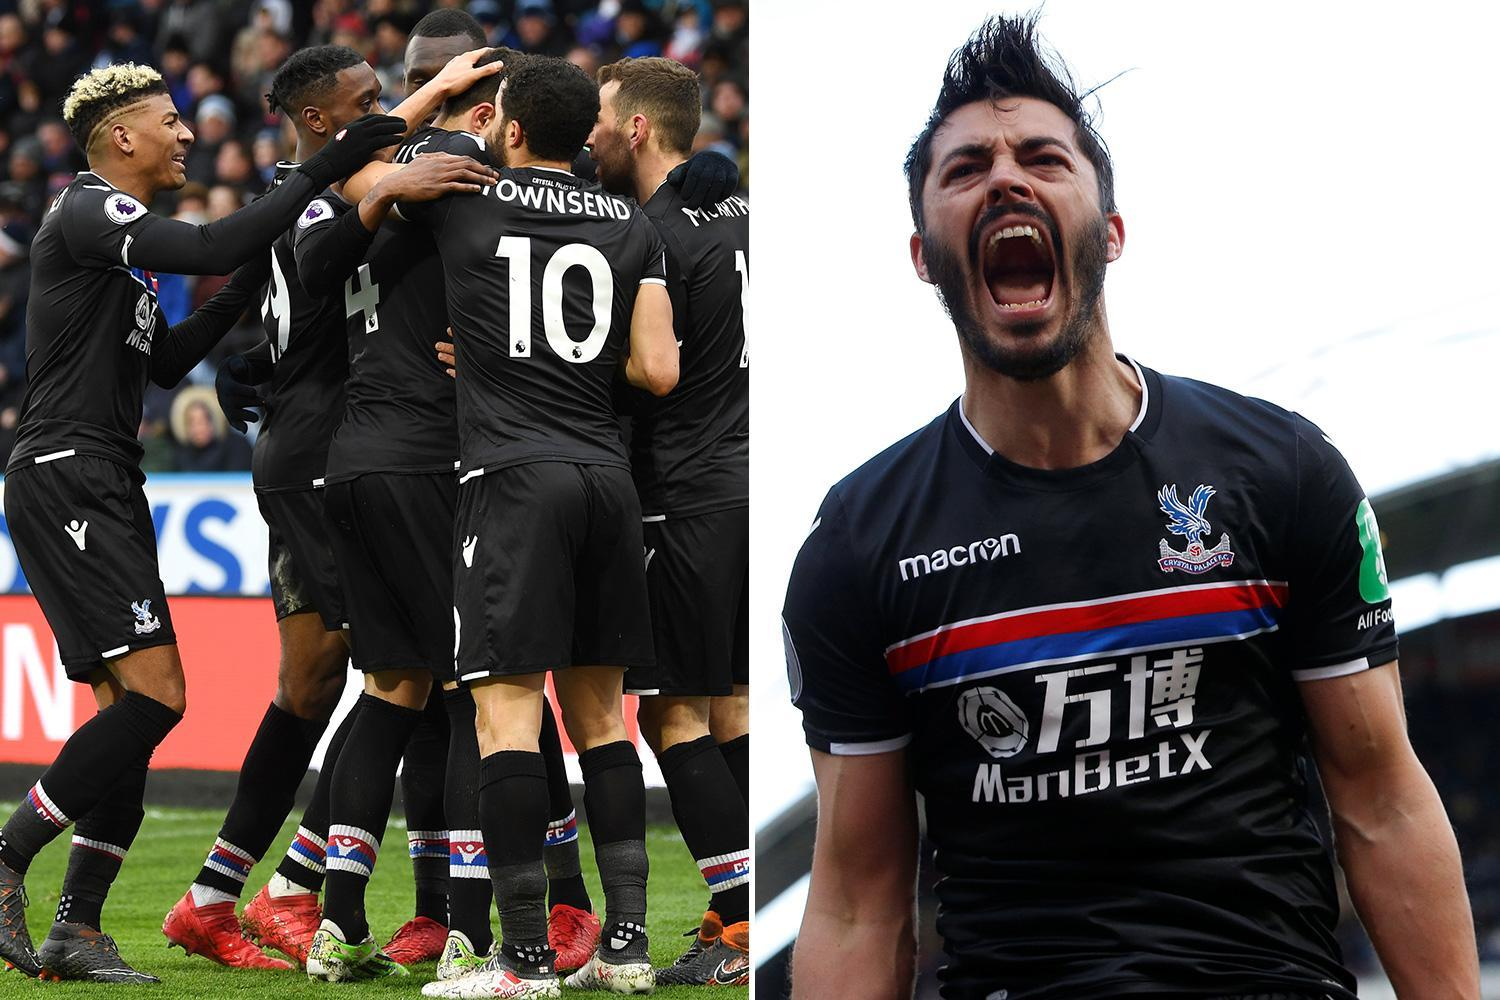 Huddersfield 0 Crystal Palace 2: Roy Hodgson's side jump out out of relegation zone thanks to goals from James Tomkins and Luka Milivojevic